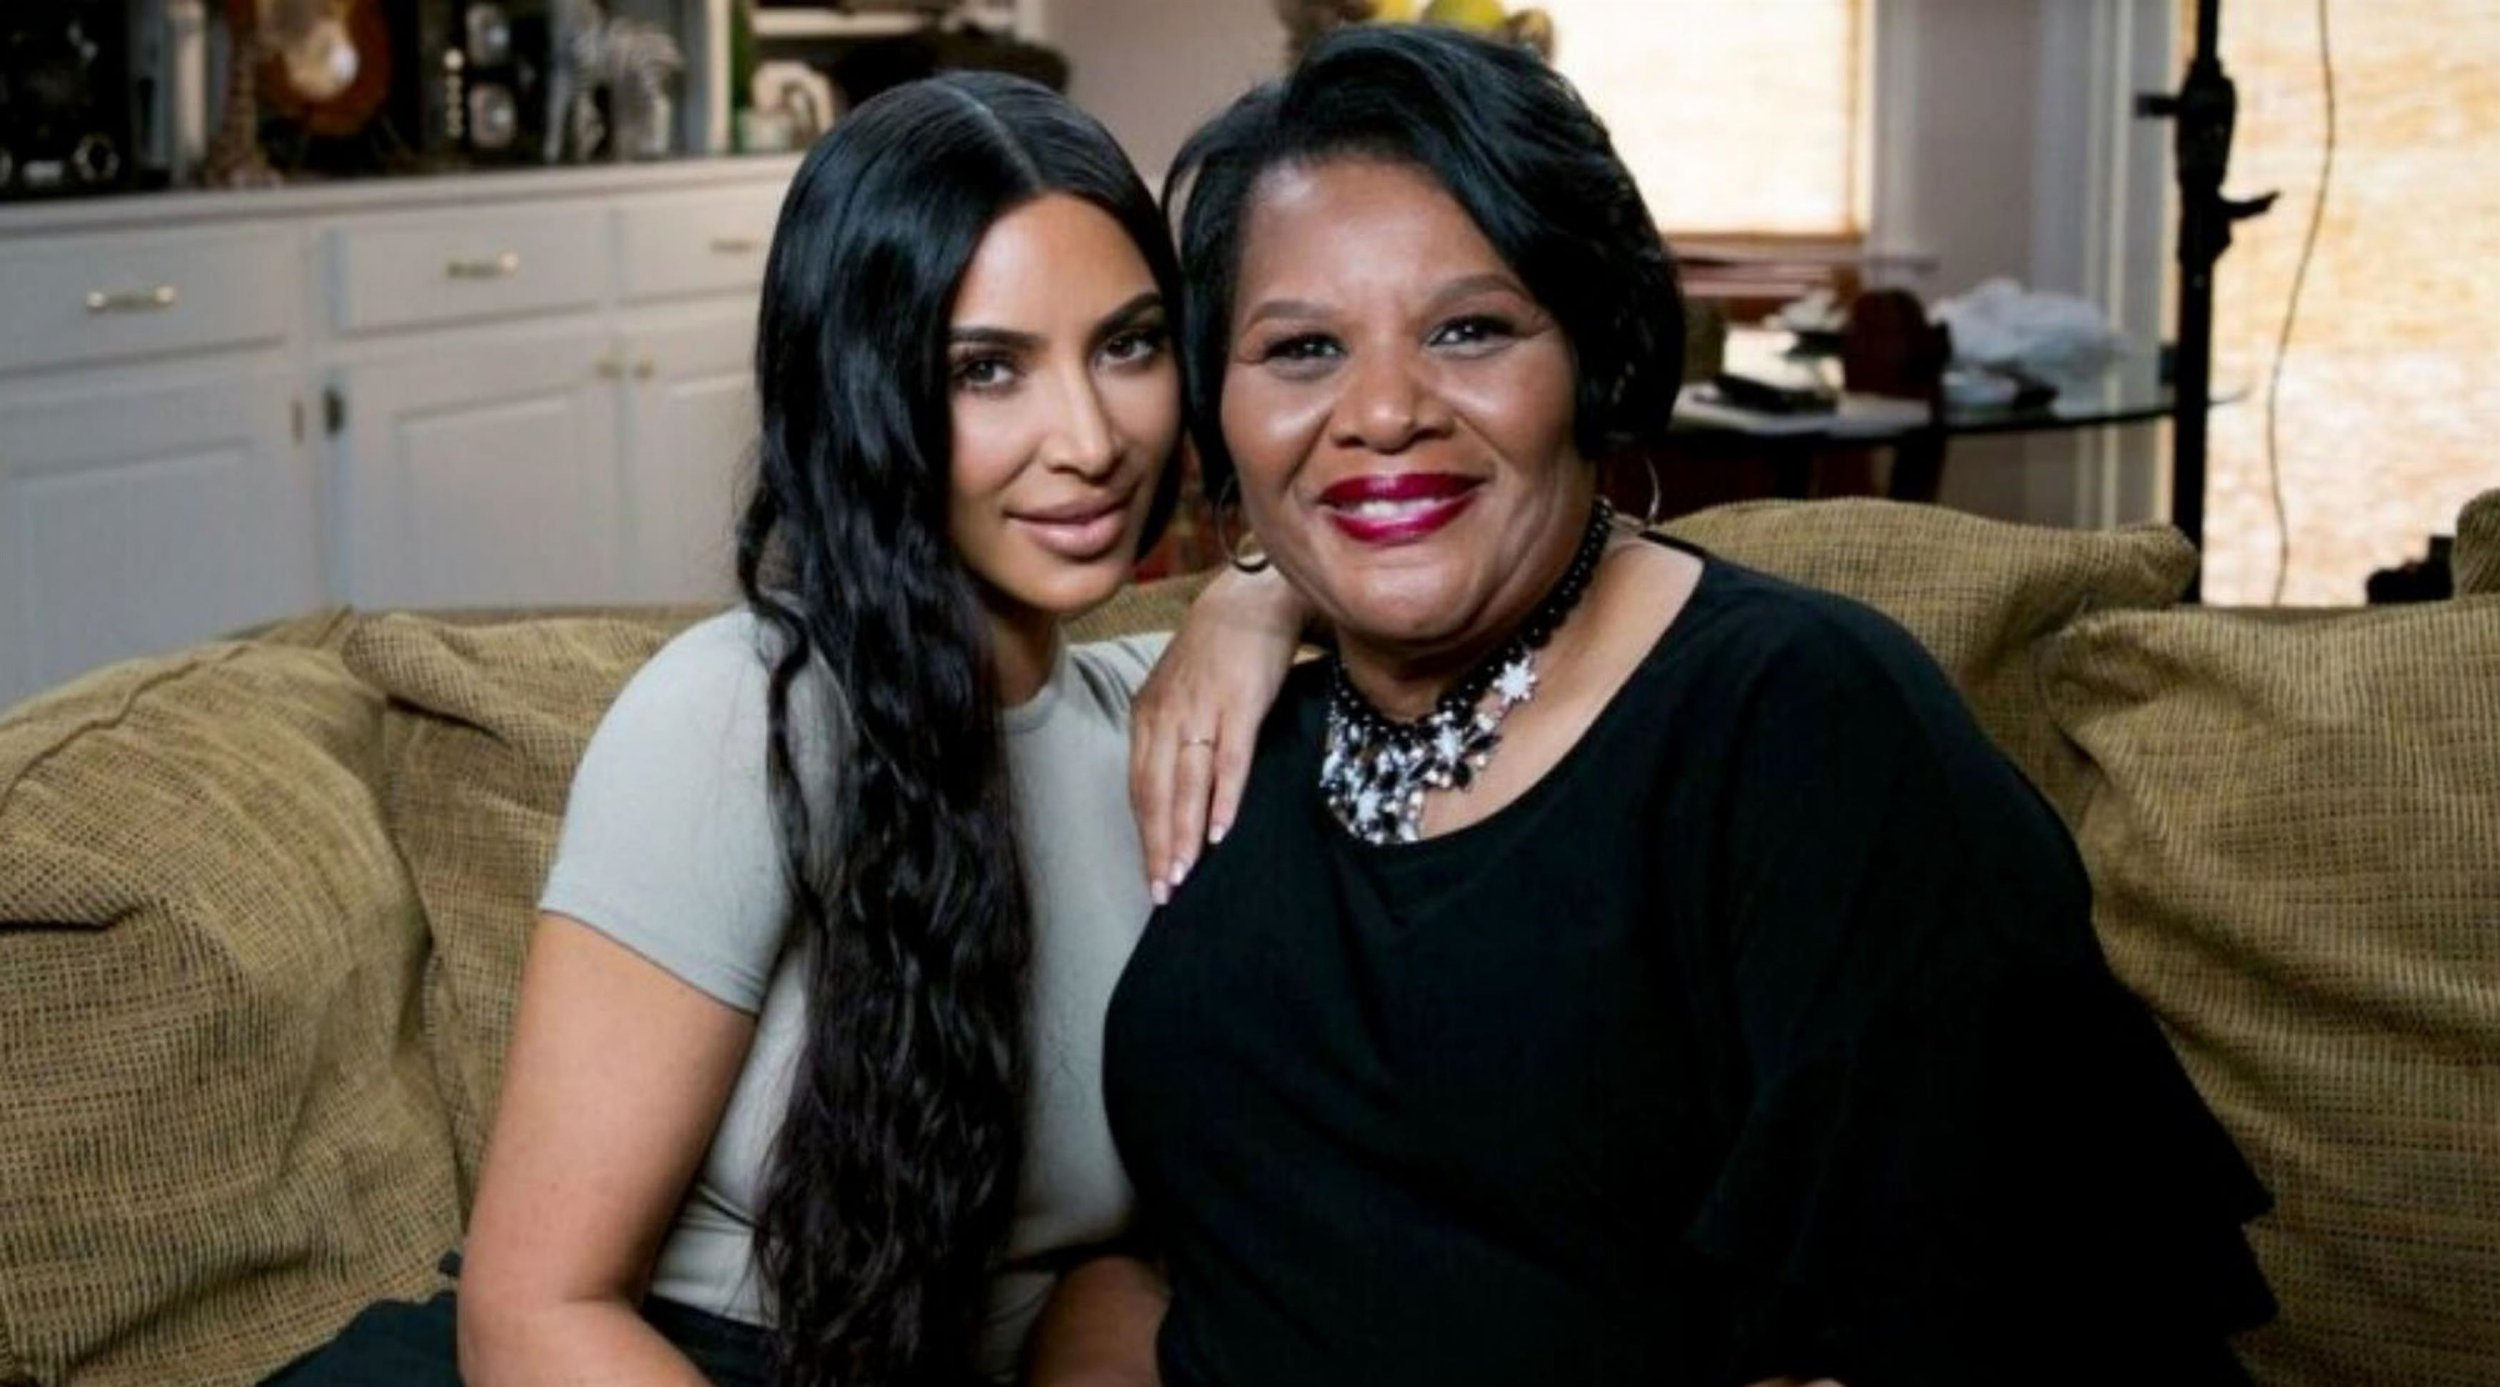 """BGUK_1262366 - ** RIGHTS: WORLDWIDE EXCEPT IN UNITED STATES ** Los Angeles, CA - Kim Kardashian meets pardoned prisoner Alice Johnson for the first time after the reality TV queen petitioned Trump to commute the drug offender's life sentence. The reality star visited Alice Johnson at her Memphis, Tennessee home on Wednesday, one week after the 63-year-old was released from jail following Kim's personal plea for the President to commute her life sentence. The pair were seen cuddling up together on Johnson's couch as they prepared for their first joint TV interview. In their sit down with NBC News??? TODAY, Hoda Kotb, Kardashian and Johnson discussed the moment they first laid eyes on each other. """"I love this woman,"""" Kardashian said, to which Johnson replied: """"I love this lady."""" Kim added: """"I mean I already knew just by talking to you on the phone and just seeing you in videos, but I mean you are everything and more than I ever thought."""" Johnson said her only reaction when she met the star was: """"This is Kim!"""" """"Y???all haven???t stopped hugging, I did notice that. I think that you guys are going to be connected for a long time,"""" Kotb noted, adding that Johnson had been nervous ahead of the meeting. Kotb added: """"Literally before you got here, Alice was ringing her hands. I go: 'Okay. Kim is coming,??? she???s like: 'I???m ready. I???m ready to meet Kim. I???m ready to meet Kim'. She also described the former inmate as being 'lit from inside'. Kim, who had been working on behalf of the grandma for months, was the first person to tell the nonviolent drug offender about her commutation back on June 6, 2018. But while the pair had spoken on the phone, this was their first in-person encounter. Talking to Good Morning America on June 7, Johnson said: """"When Kim told me that I was being released, I started jumping and screaming and crying, and everyone else was crying. It was wonderful. I'm so glad that she was the one who was able to deliver the news to me. It was a perfect en"""